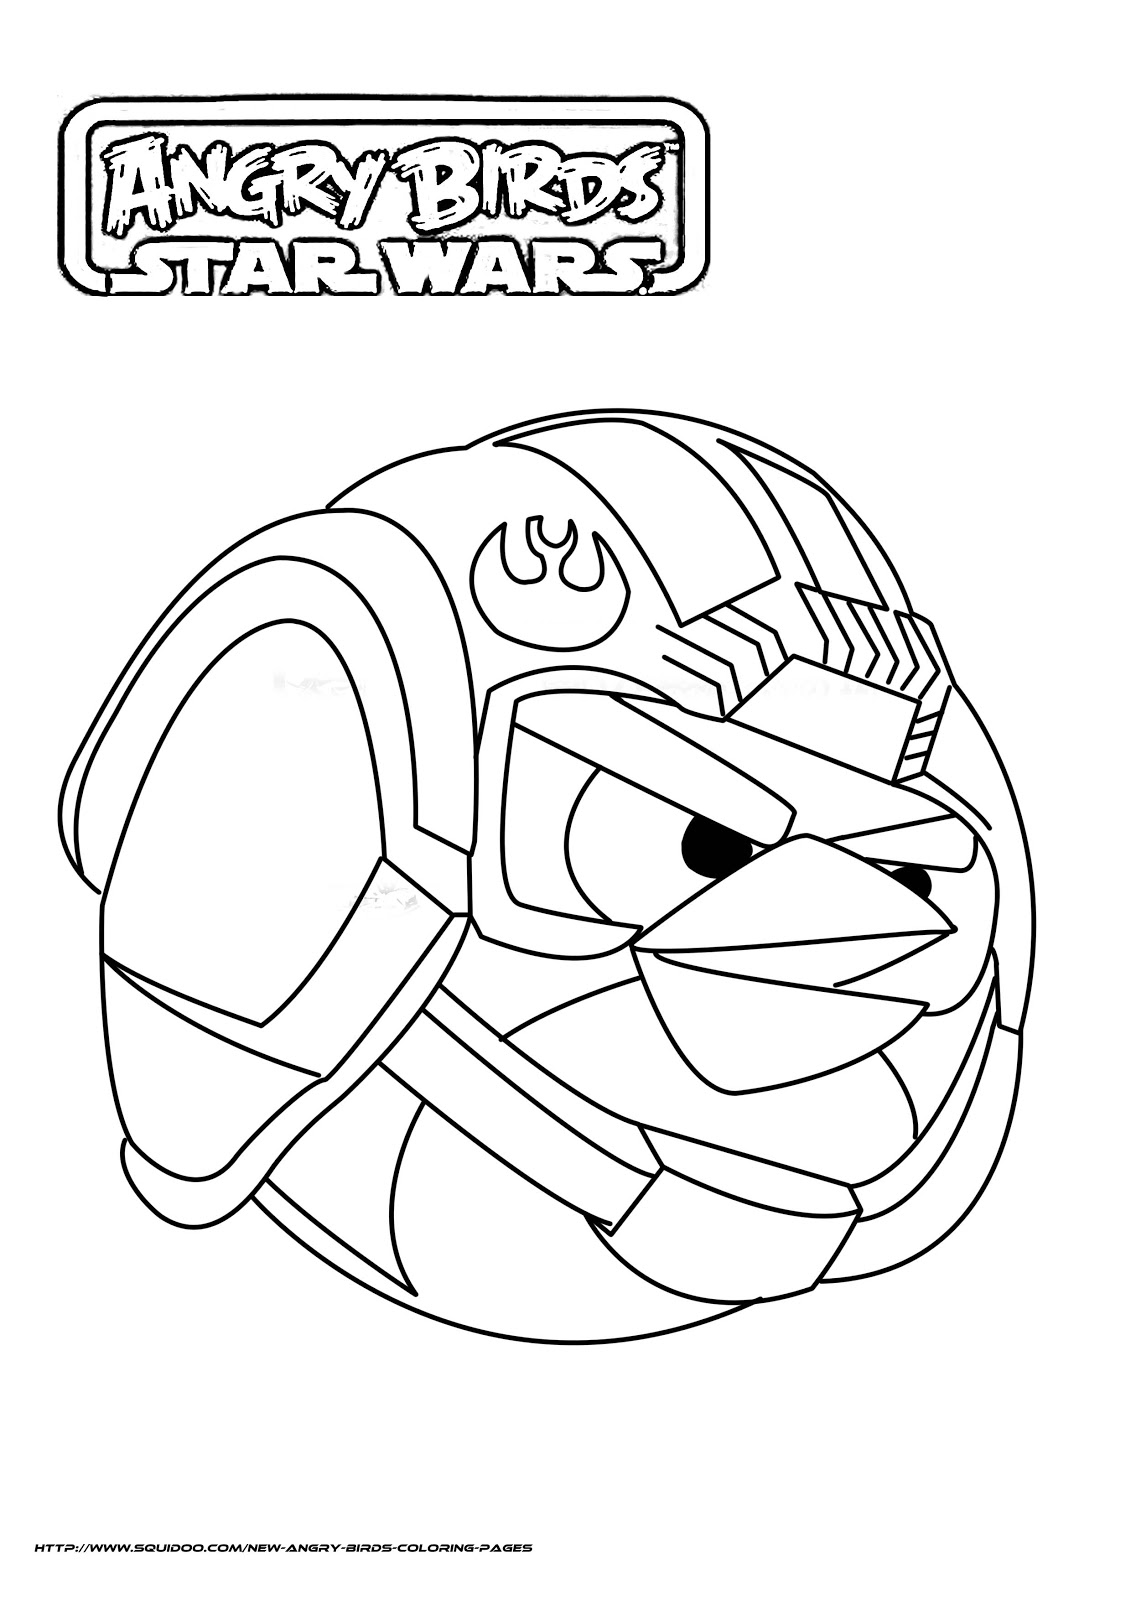 Dorable Angry Birds Star Wars Rebels Para Colorear Festooning ...